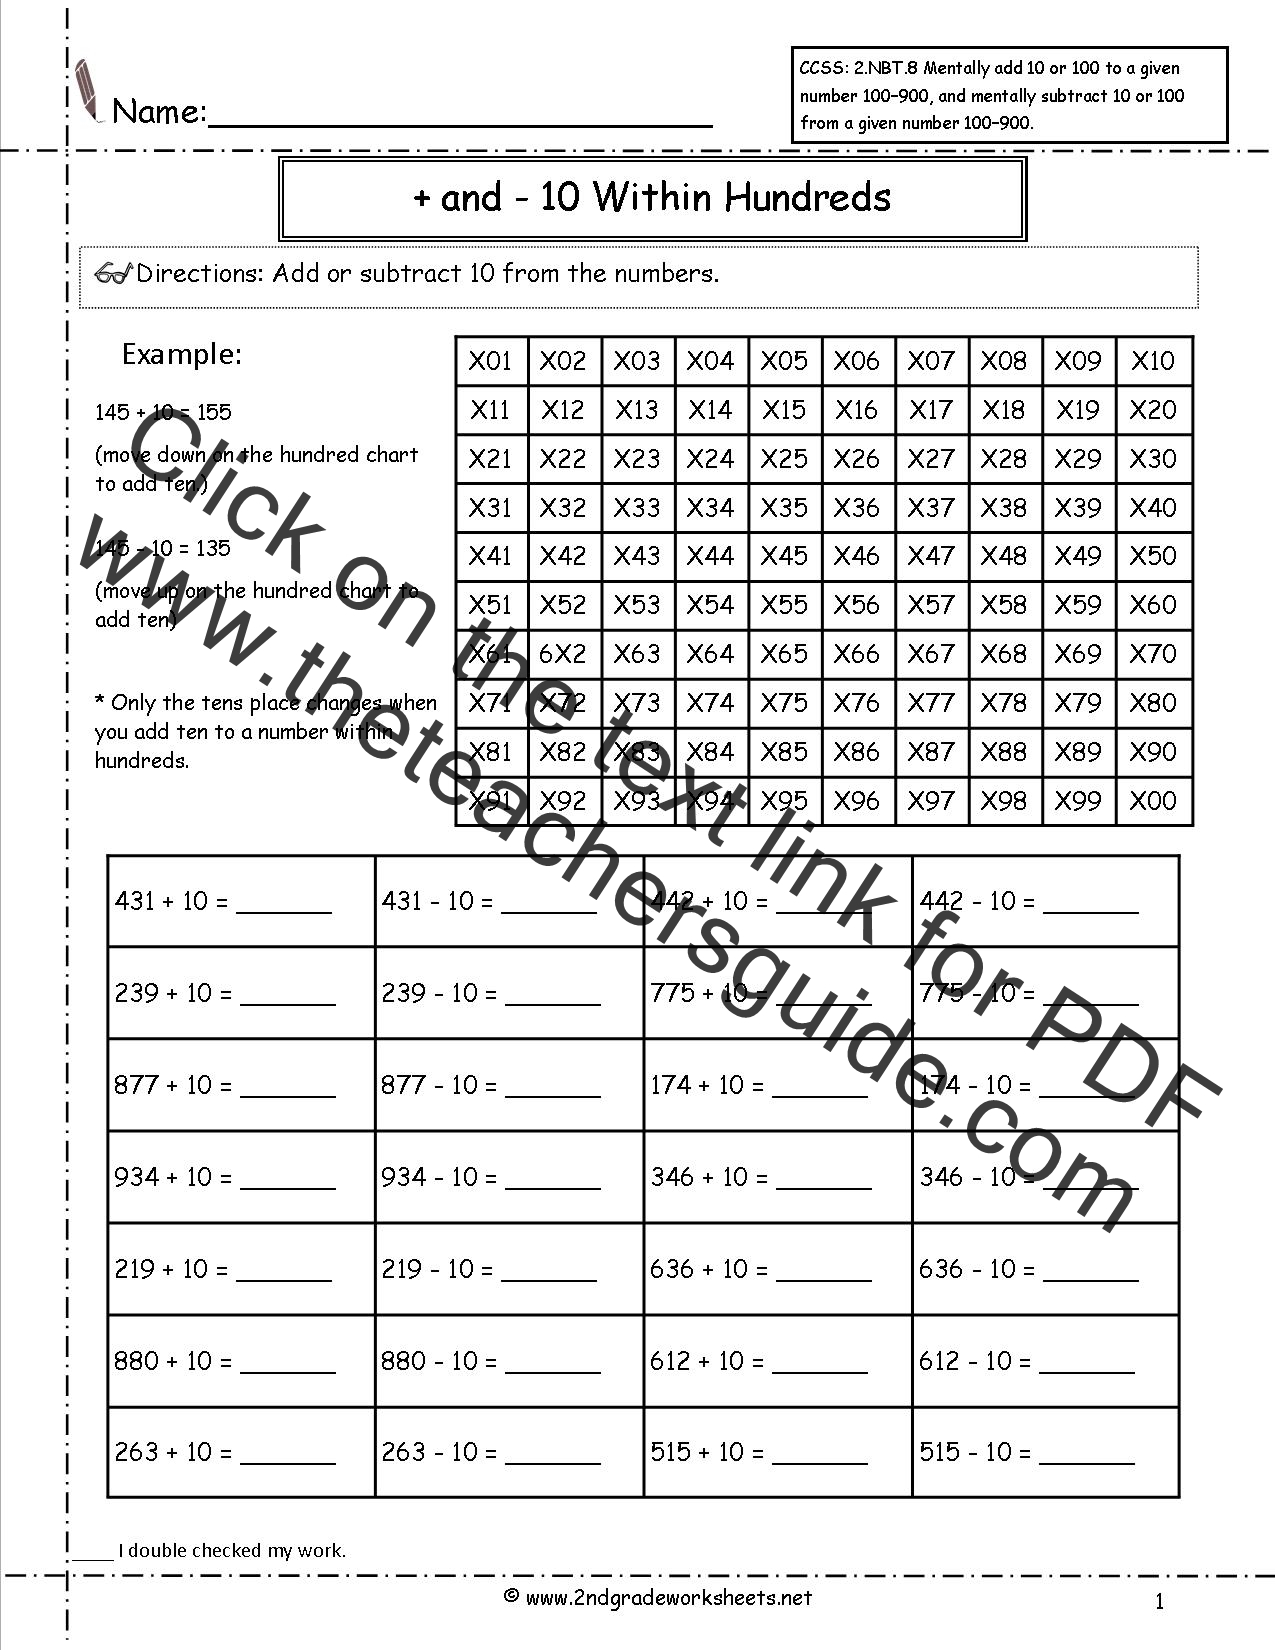 math worksheet : 2nd grade math common core state standards worksheets : Subtracting Tens Worksheet